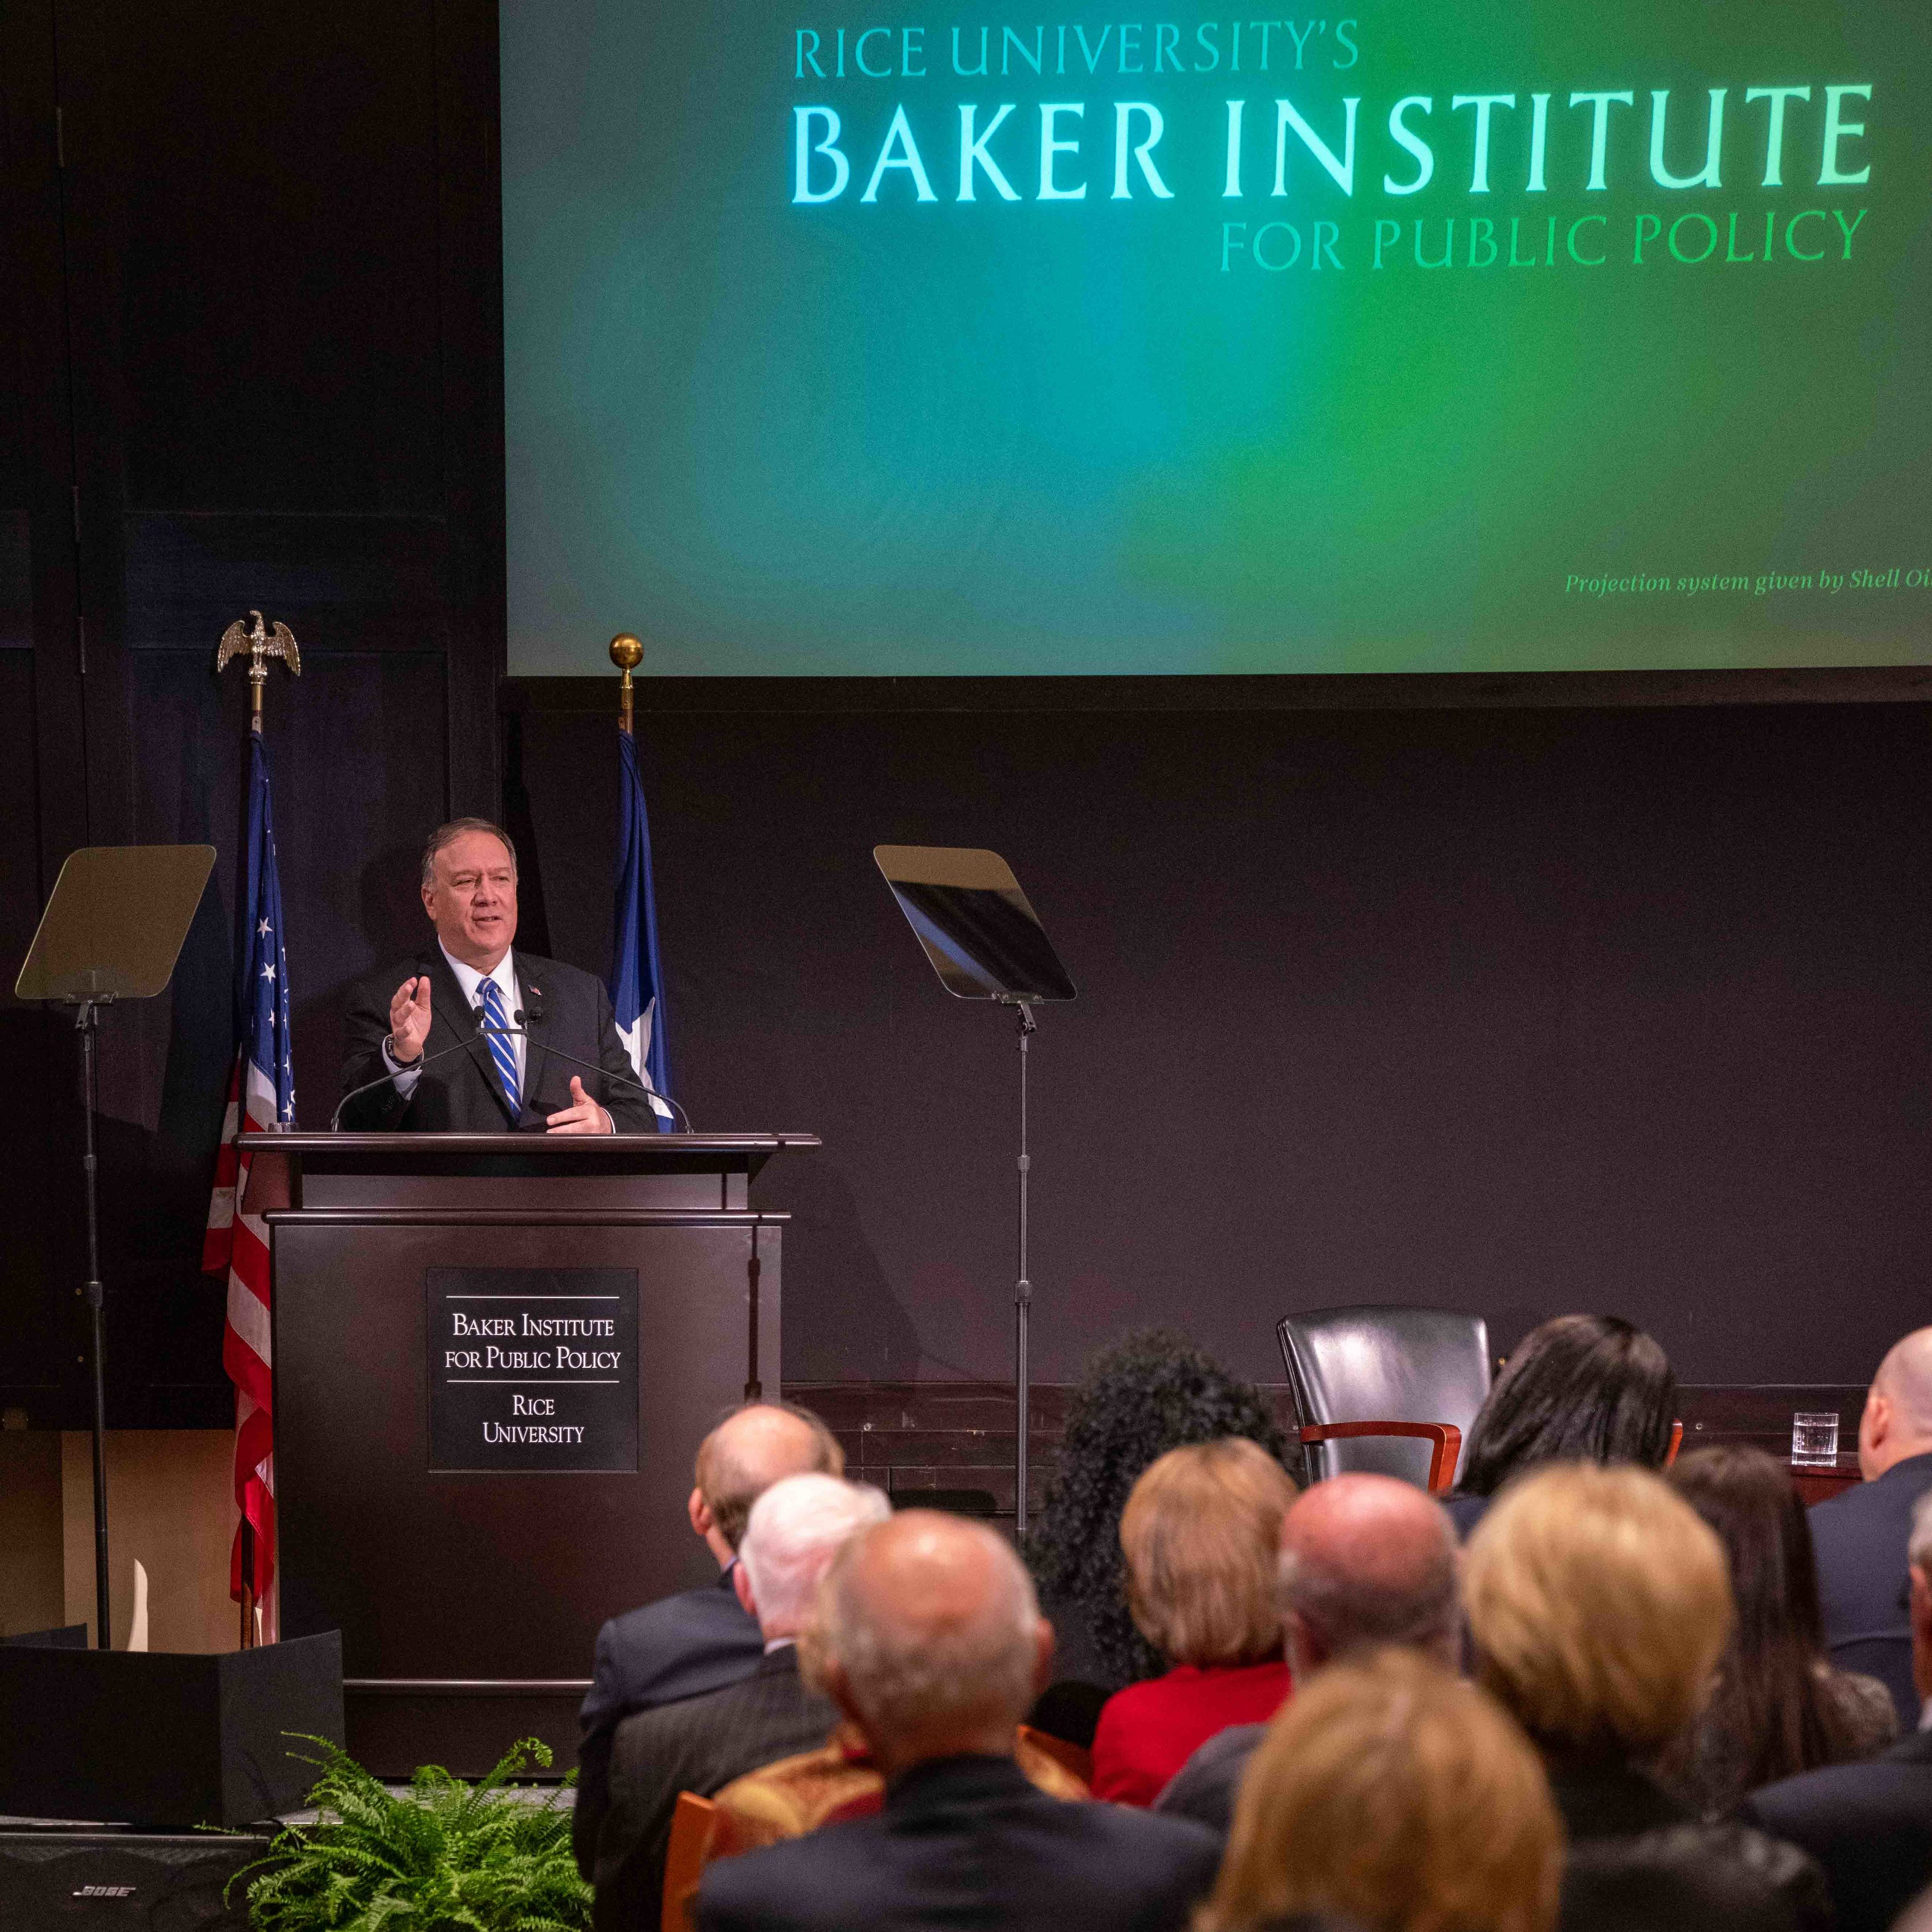 """Secretary of State Michael R. Pompeo delivers a speech on """"In Tribute to Human Freedom"""" at Rice University's Baker Institute for Public Policy, in Houston, Texas on November 15, 2019. [State Department photo by Ron Przysucha/Public Domain]"""